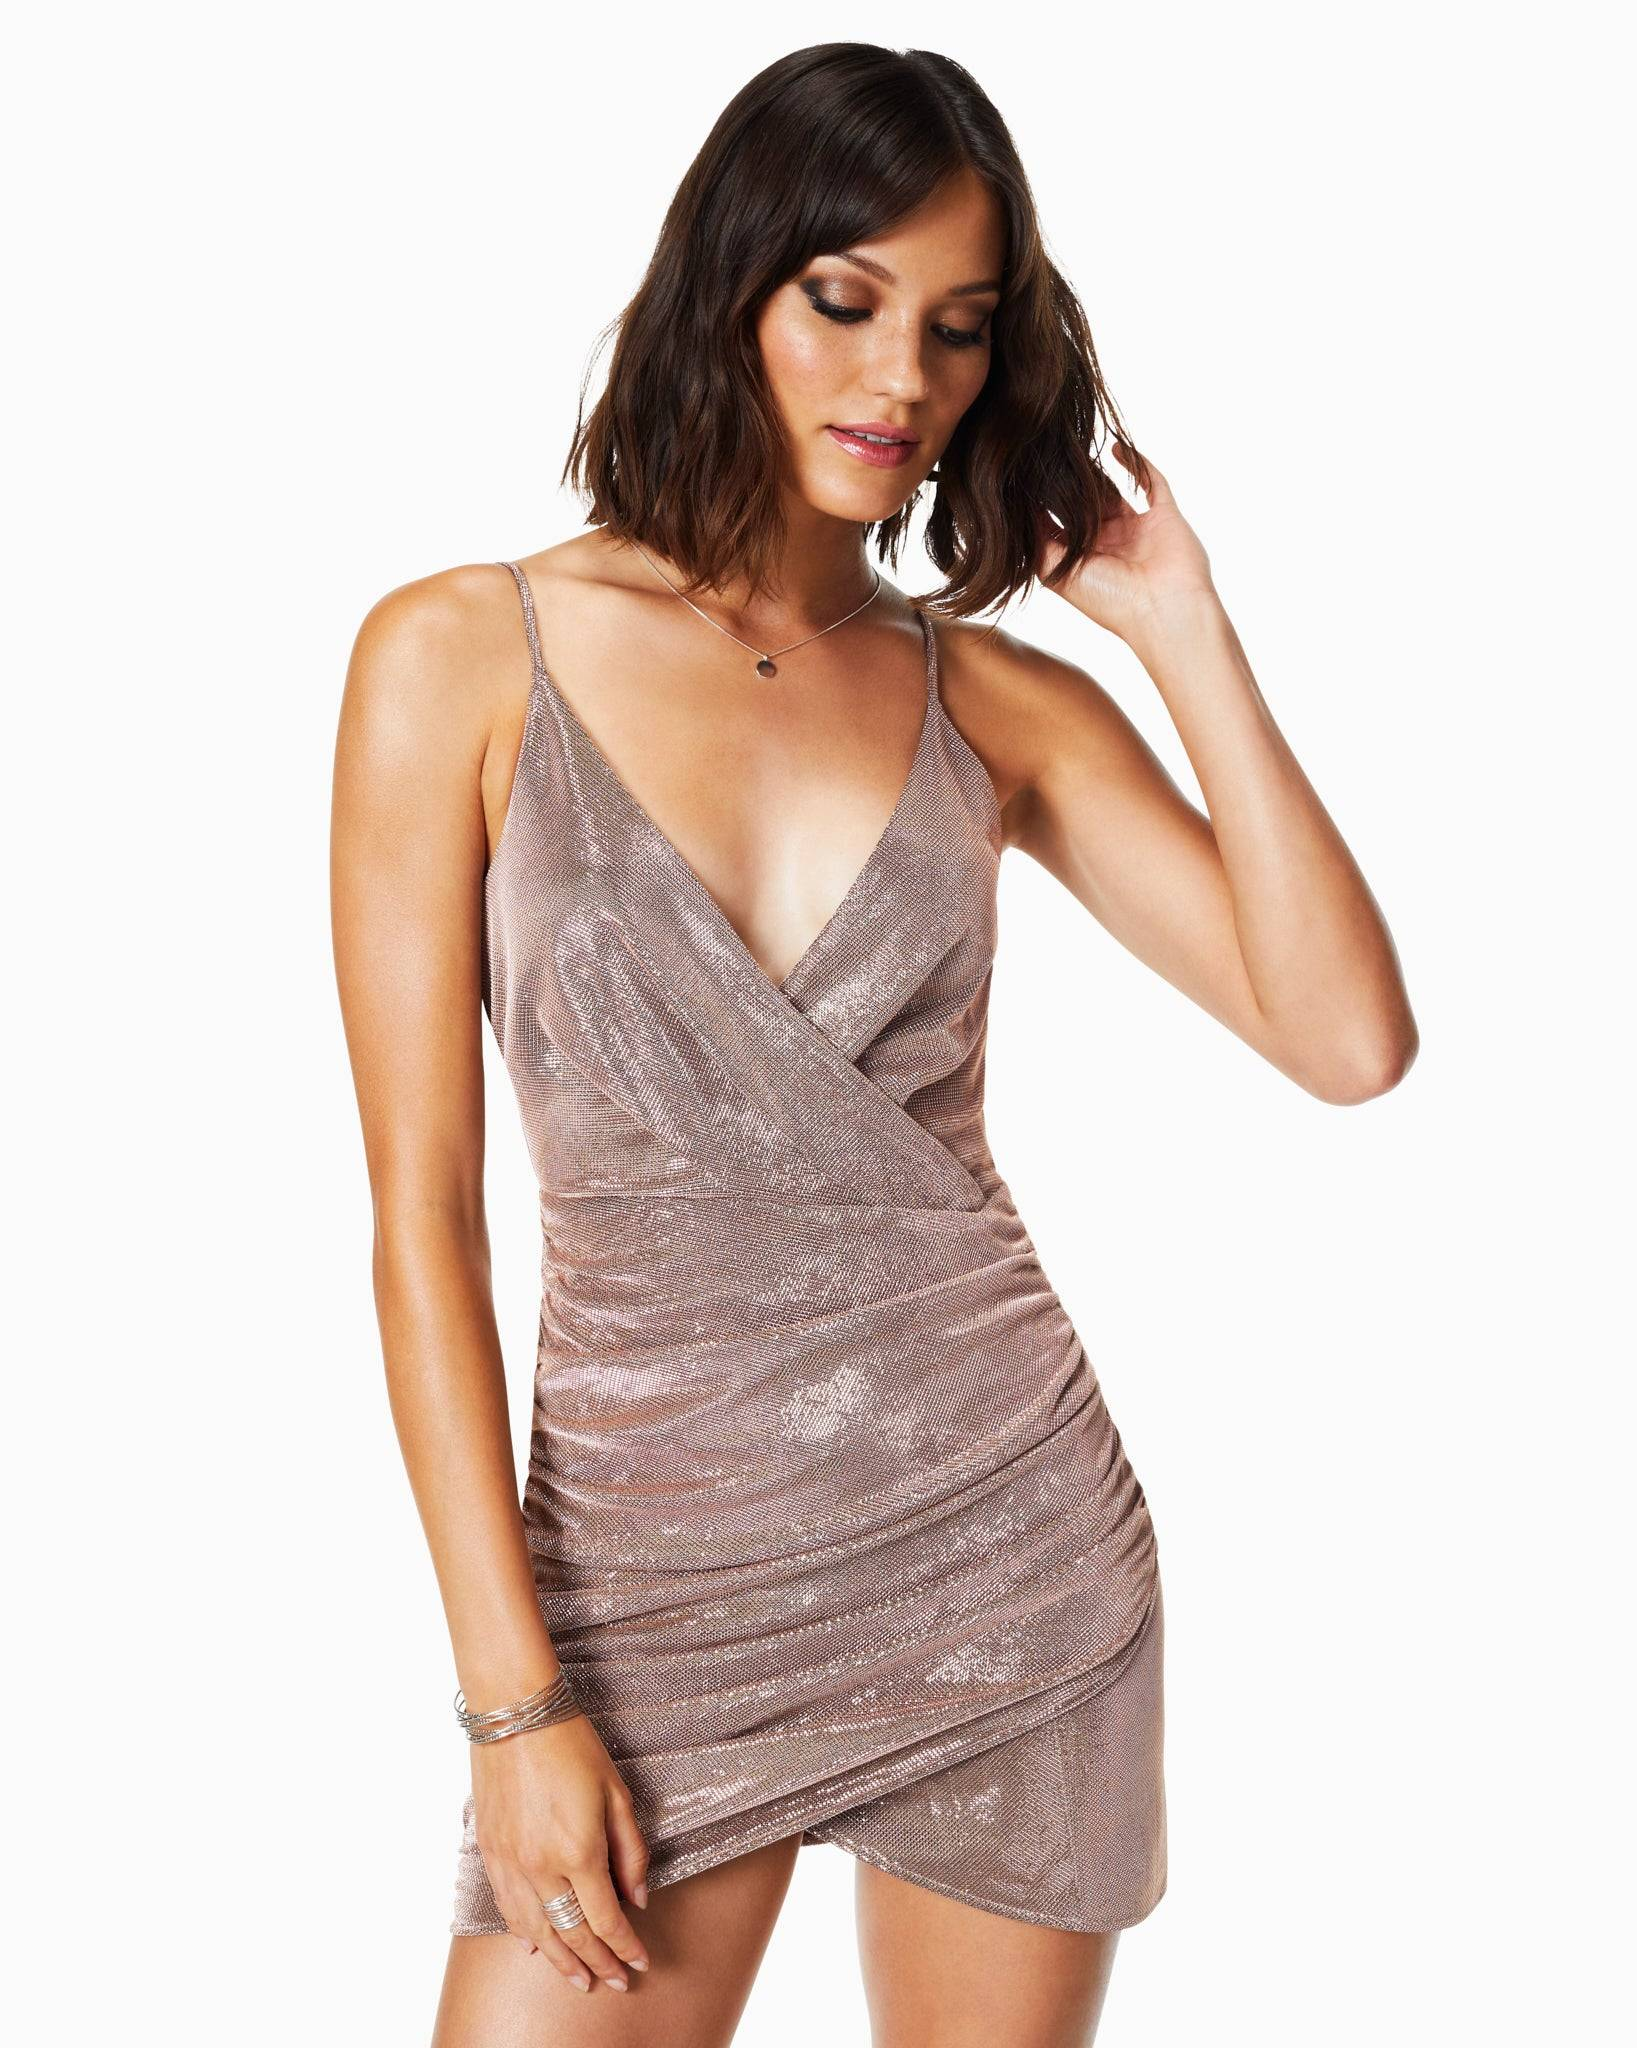 Madilyn Ruched Mini Dress in Holiday Blush - Holiday Blush - Size: 2